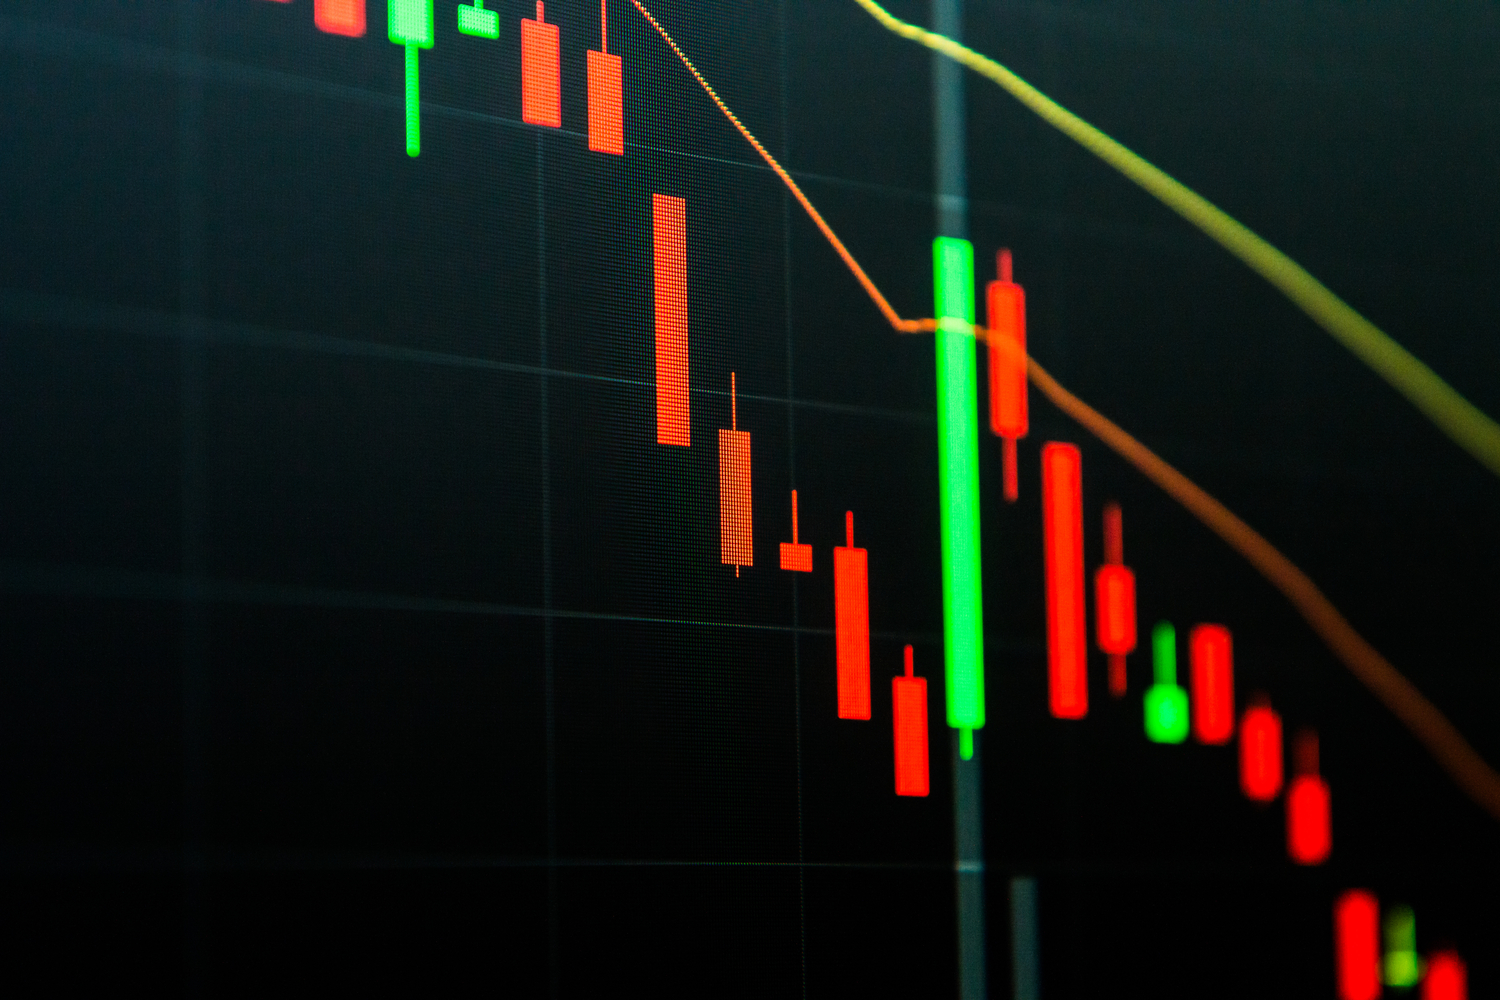 Coinbase Falls Below $250 Reference Price for First Time Amid Crypto Correction